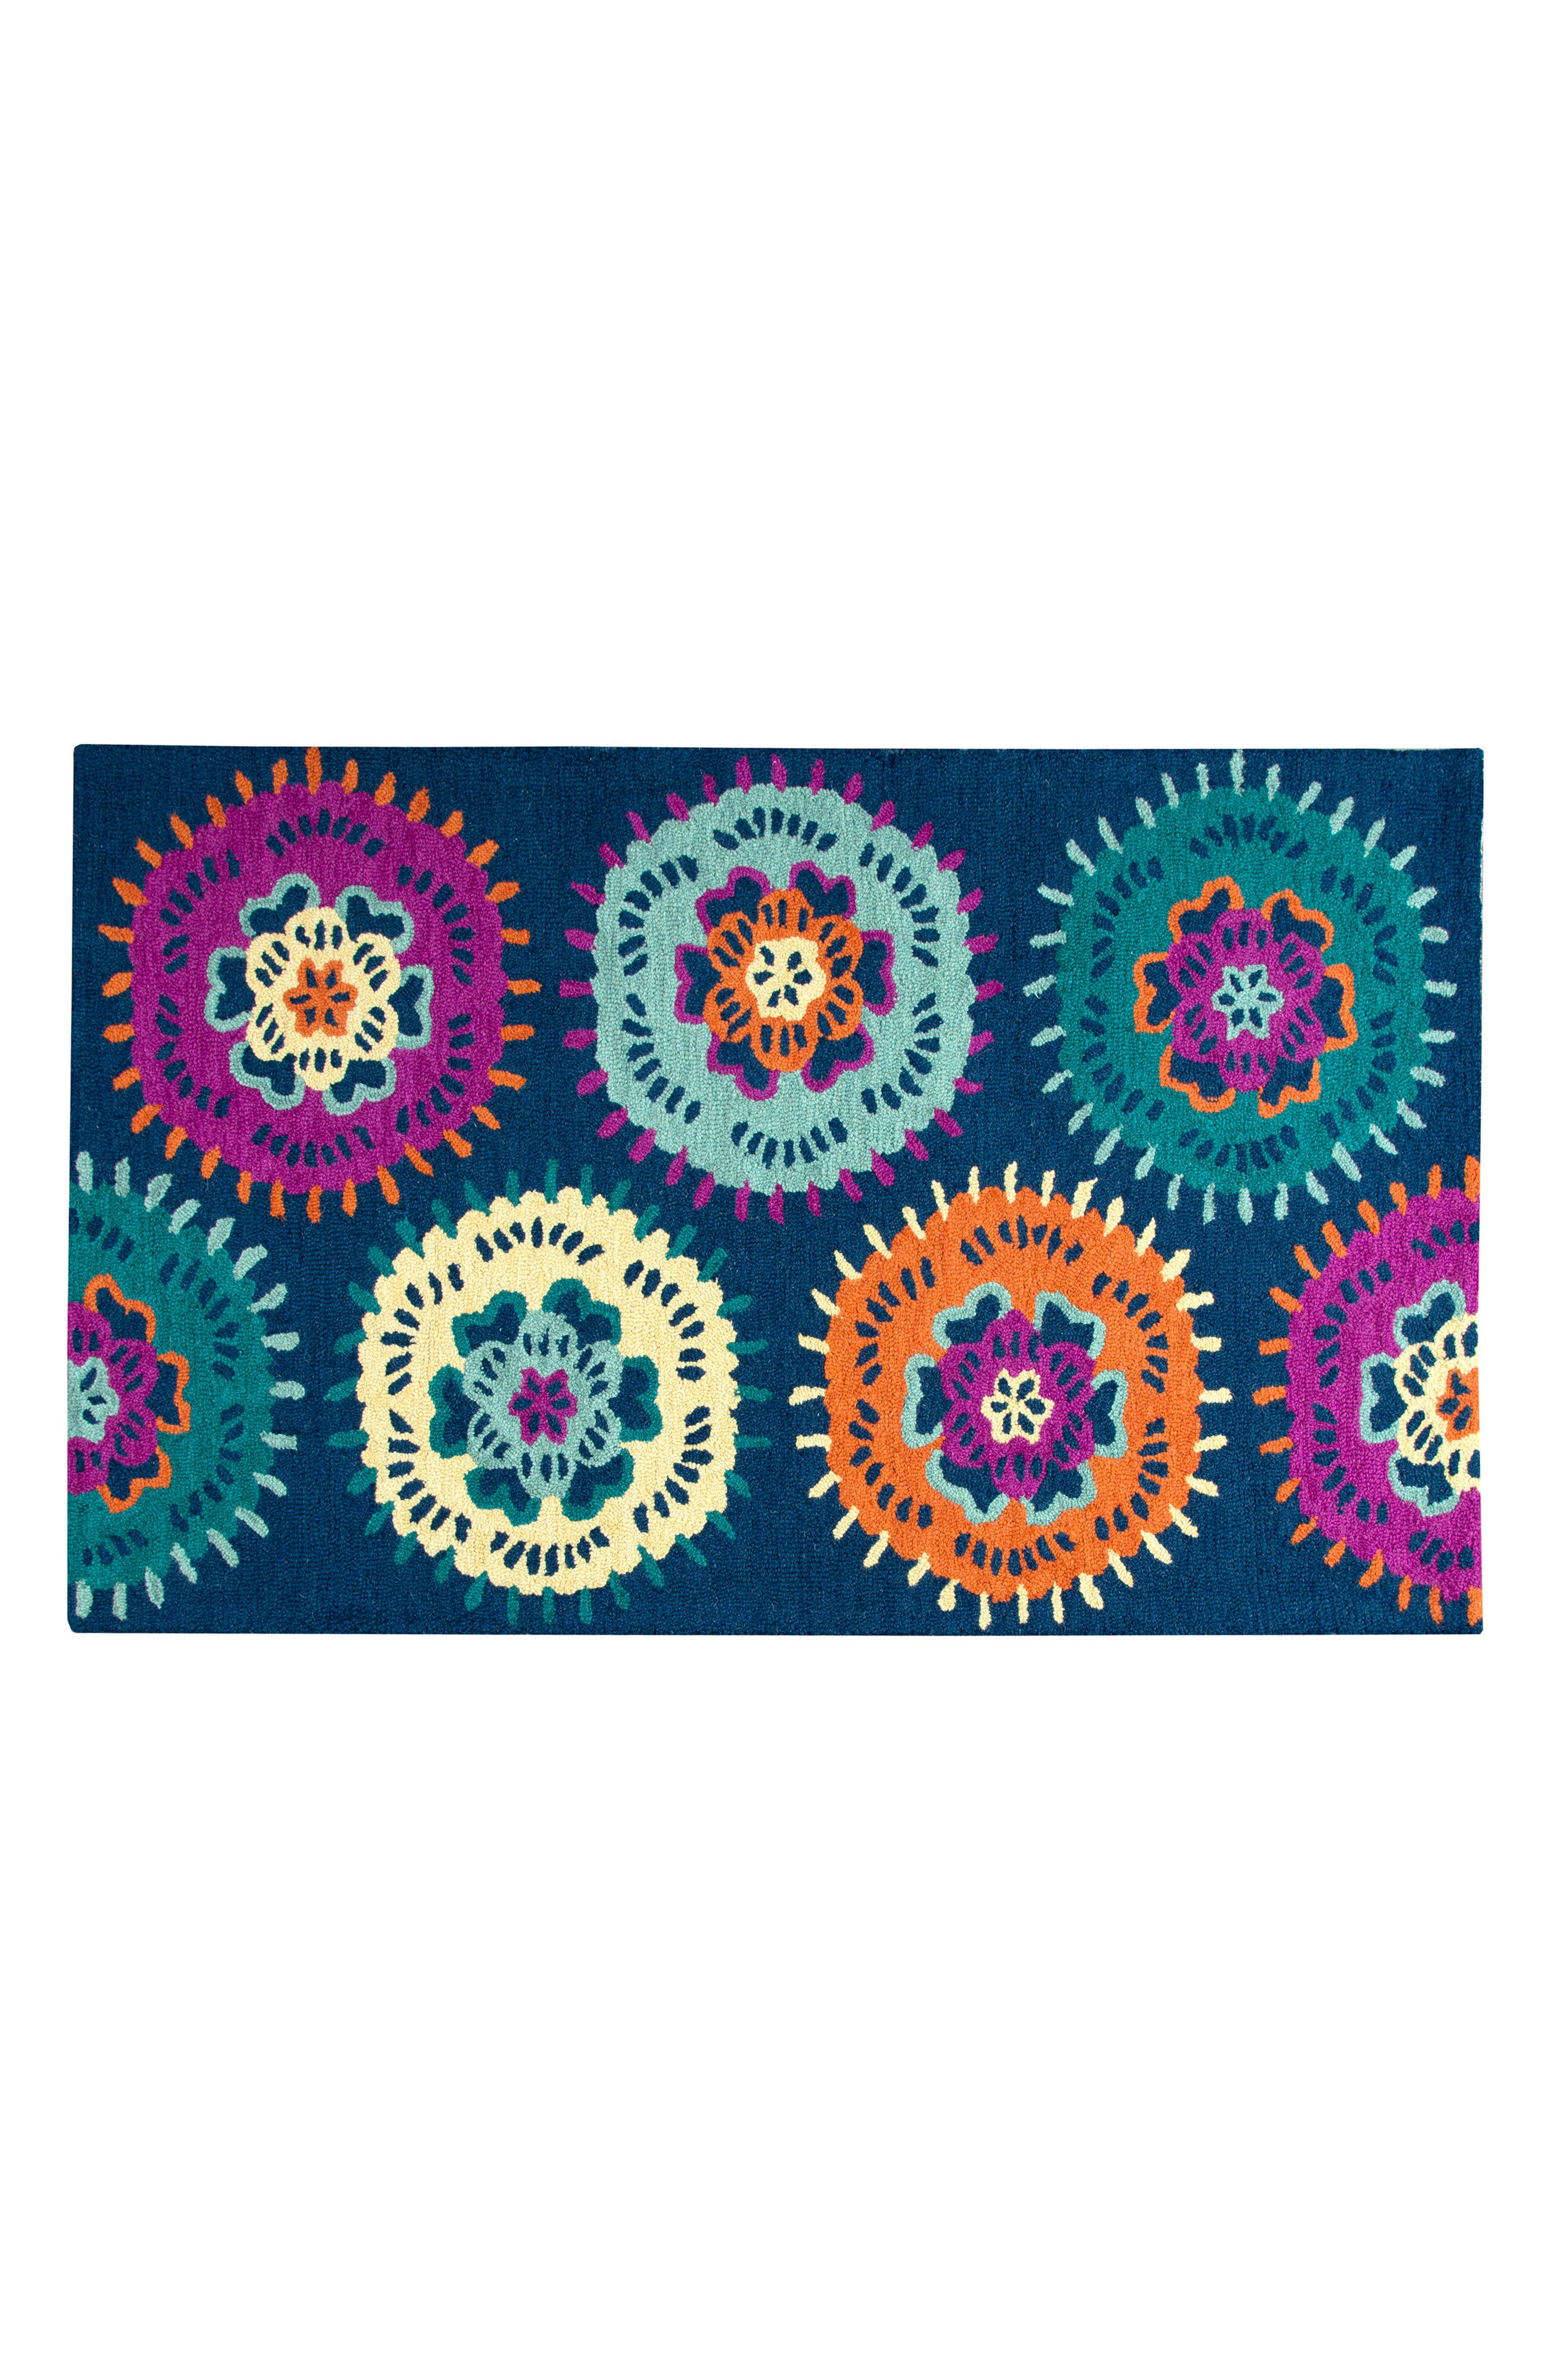 Play Day Flowery Rug,                         Main,                         color,